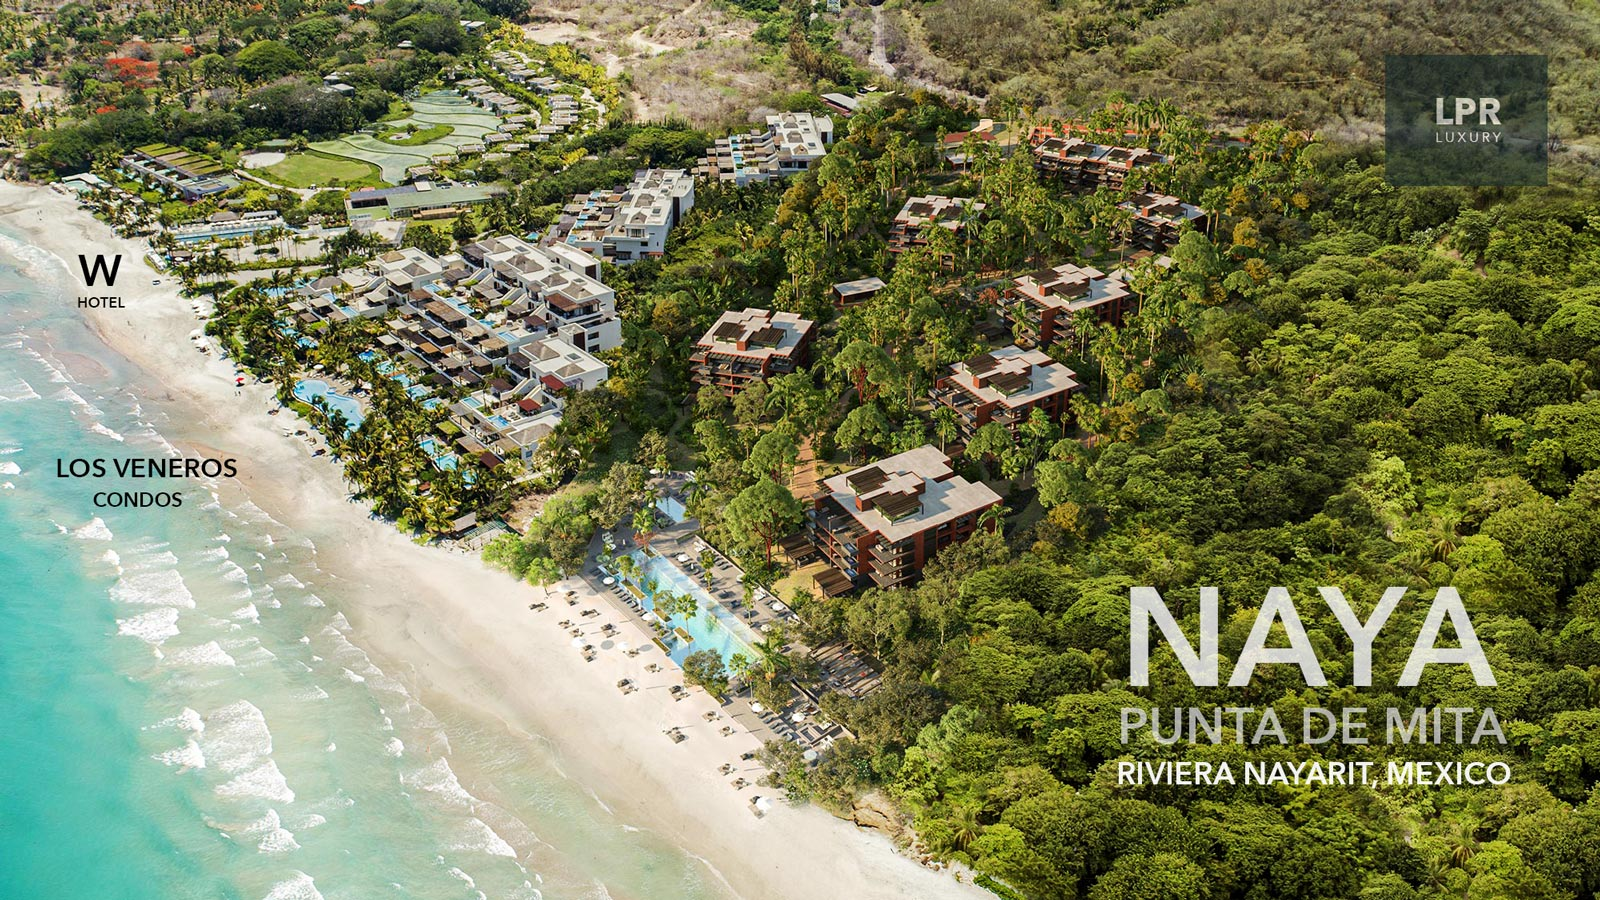 NAYA - Punta de Mita beachfront condos for sale - Riviera Nayarit, Mexico